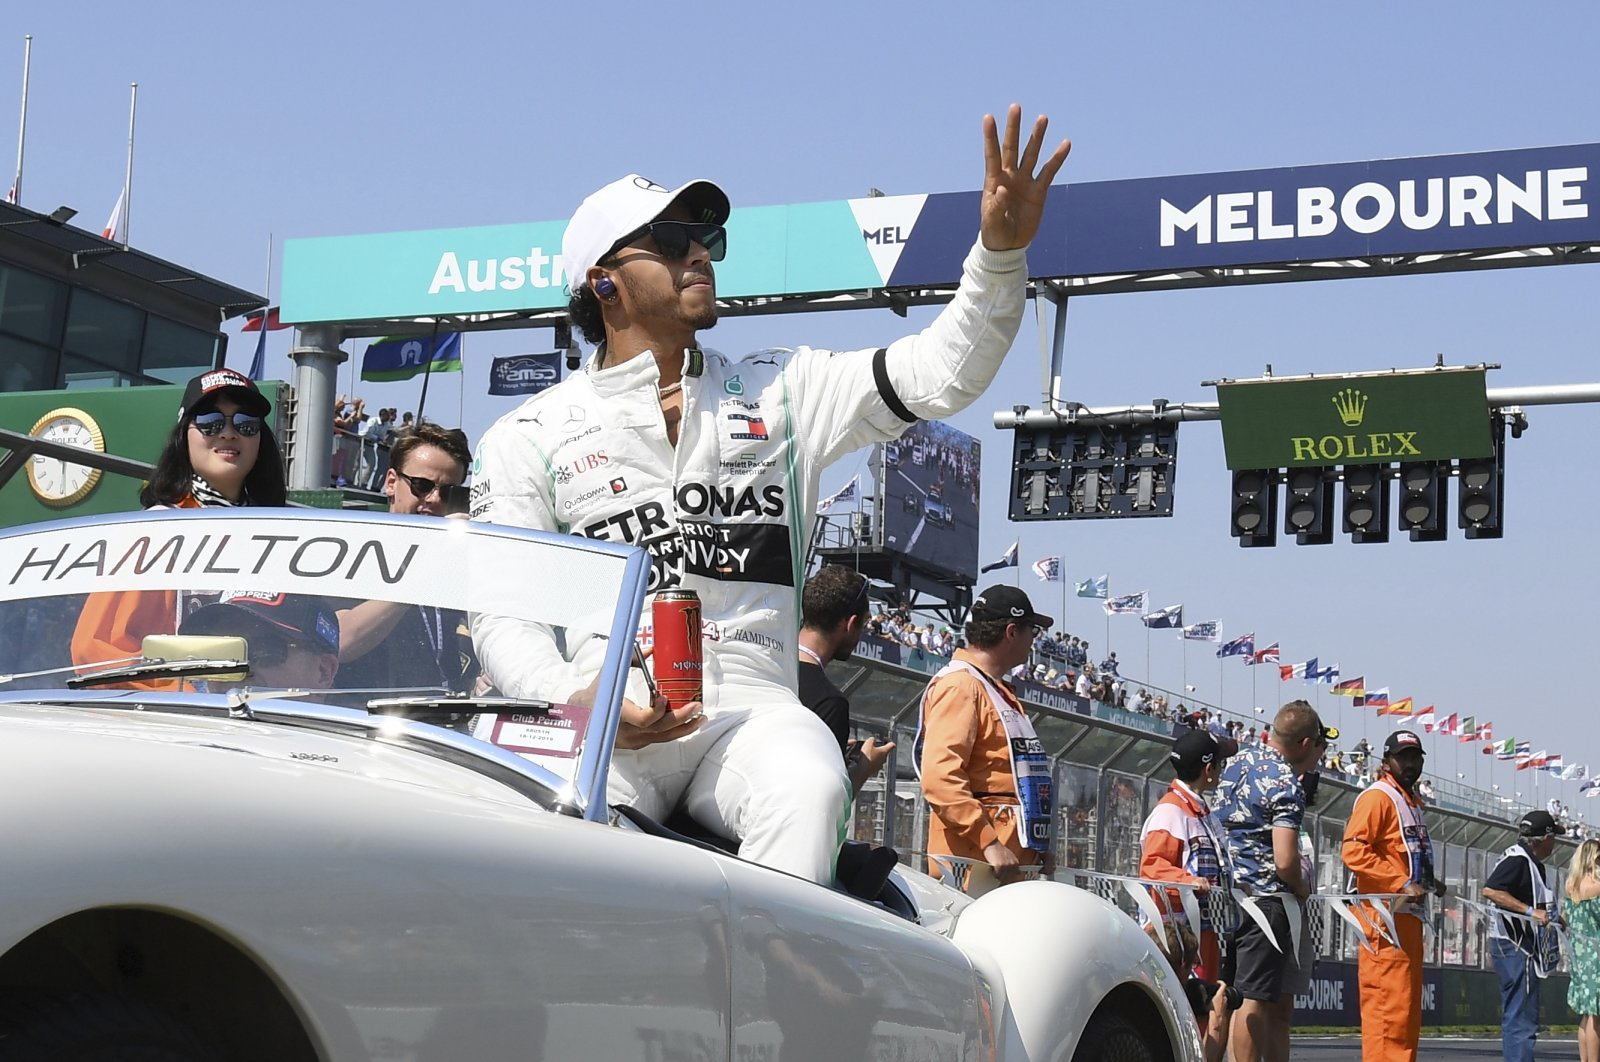 In this March 17, 2019, file photo, Mercedes driver Lewis Hamilton of Britain waves as the drivers parade begins ahead of the Australian Grand Prix in Melbourne, Australia. (AP Photo)